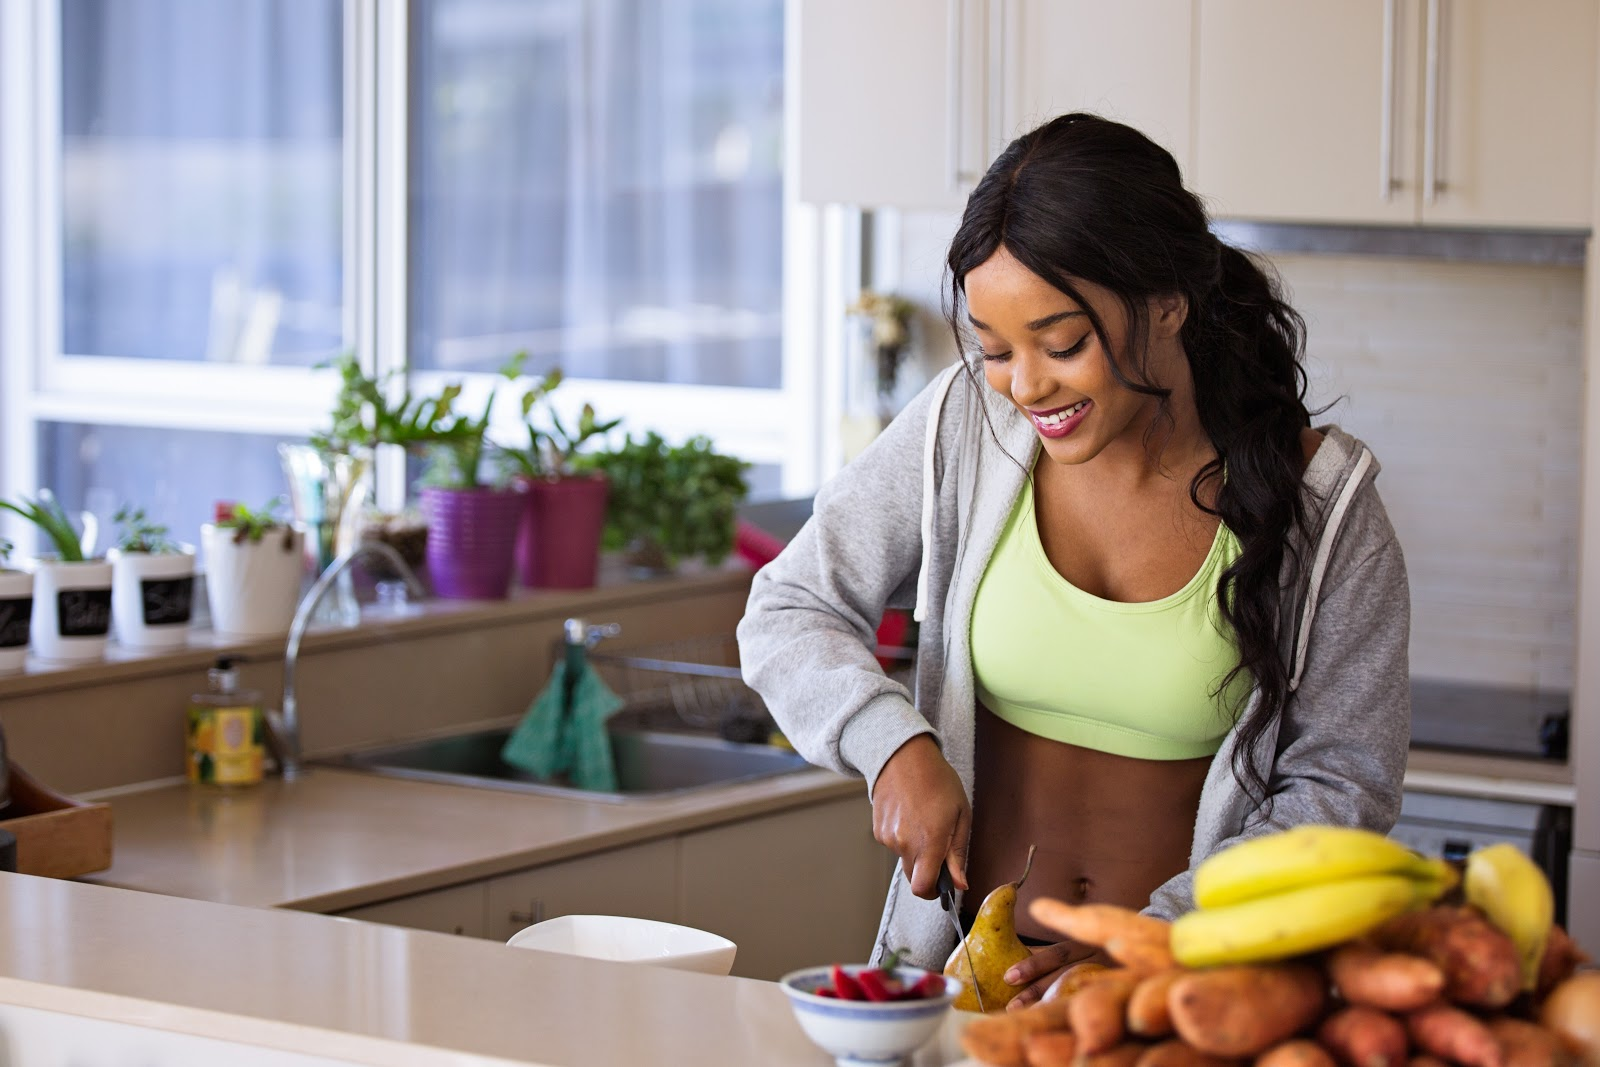 Black woman stay healthy at home by eating clean diet